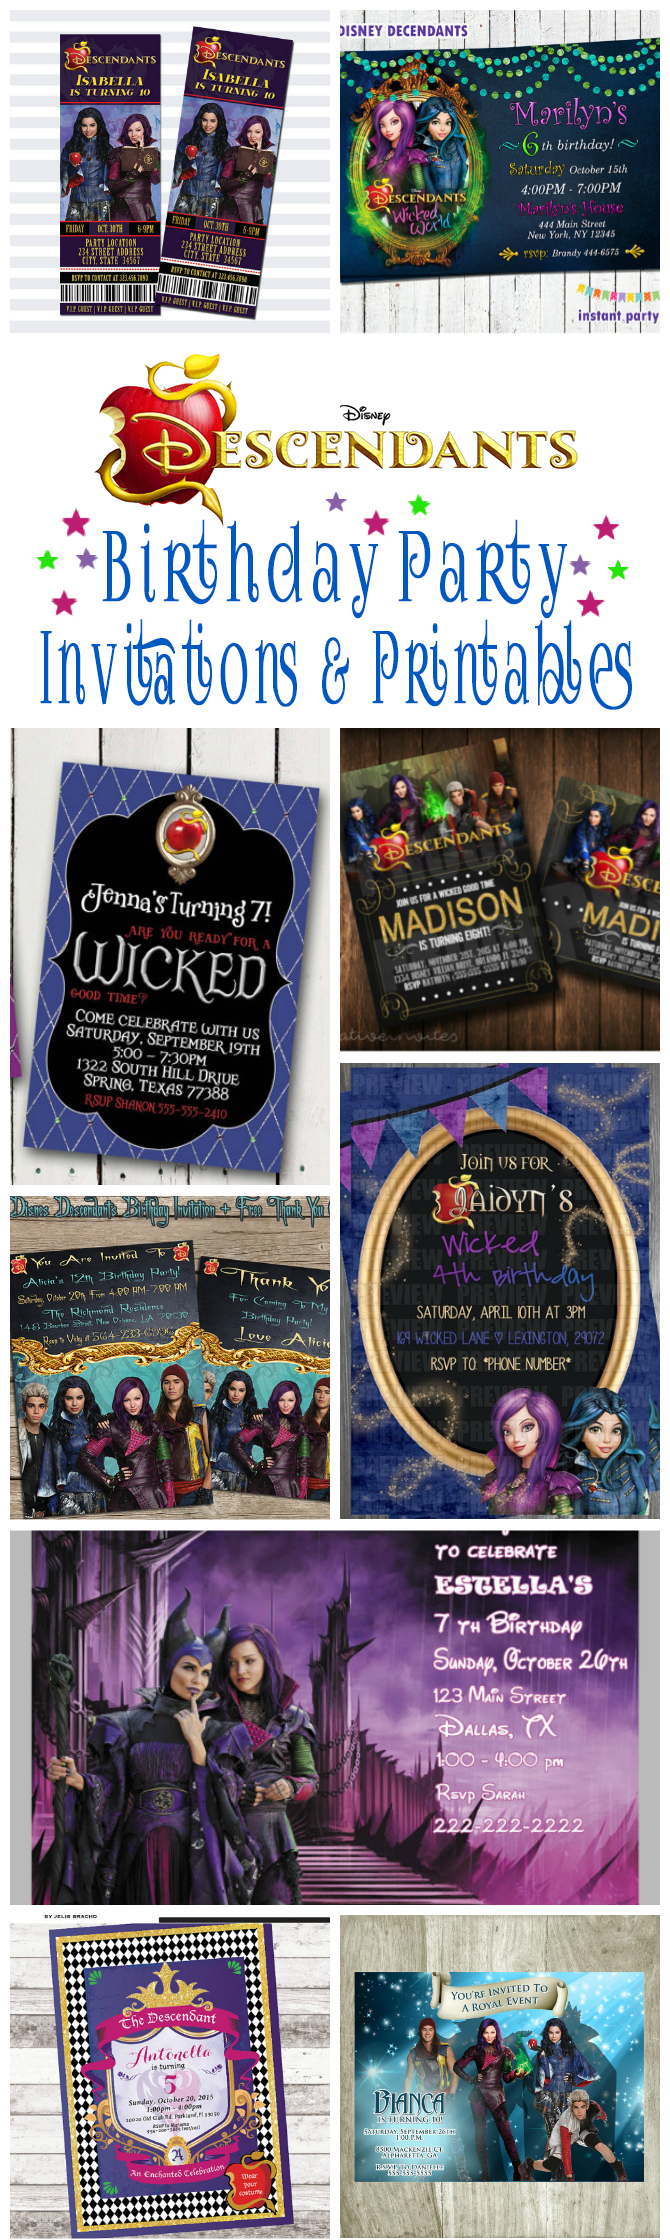 disney descendants birthday party invitations and printables omg disney descendants birthday party invitations and other party printables includes birthday party invites cupcake